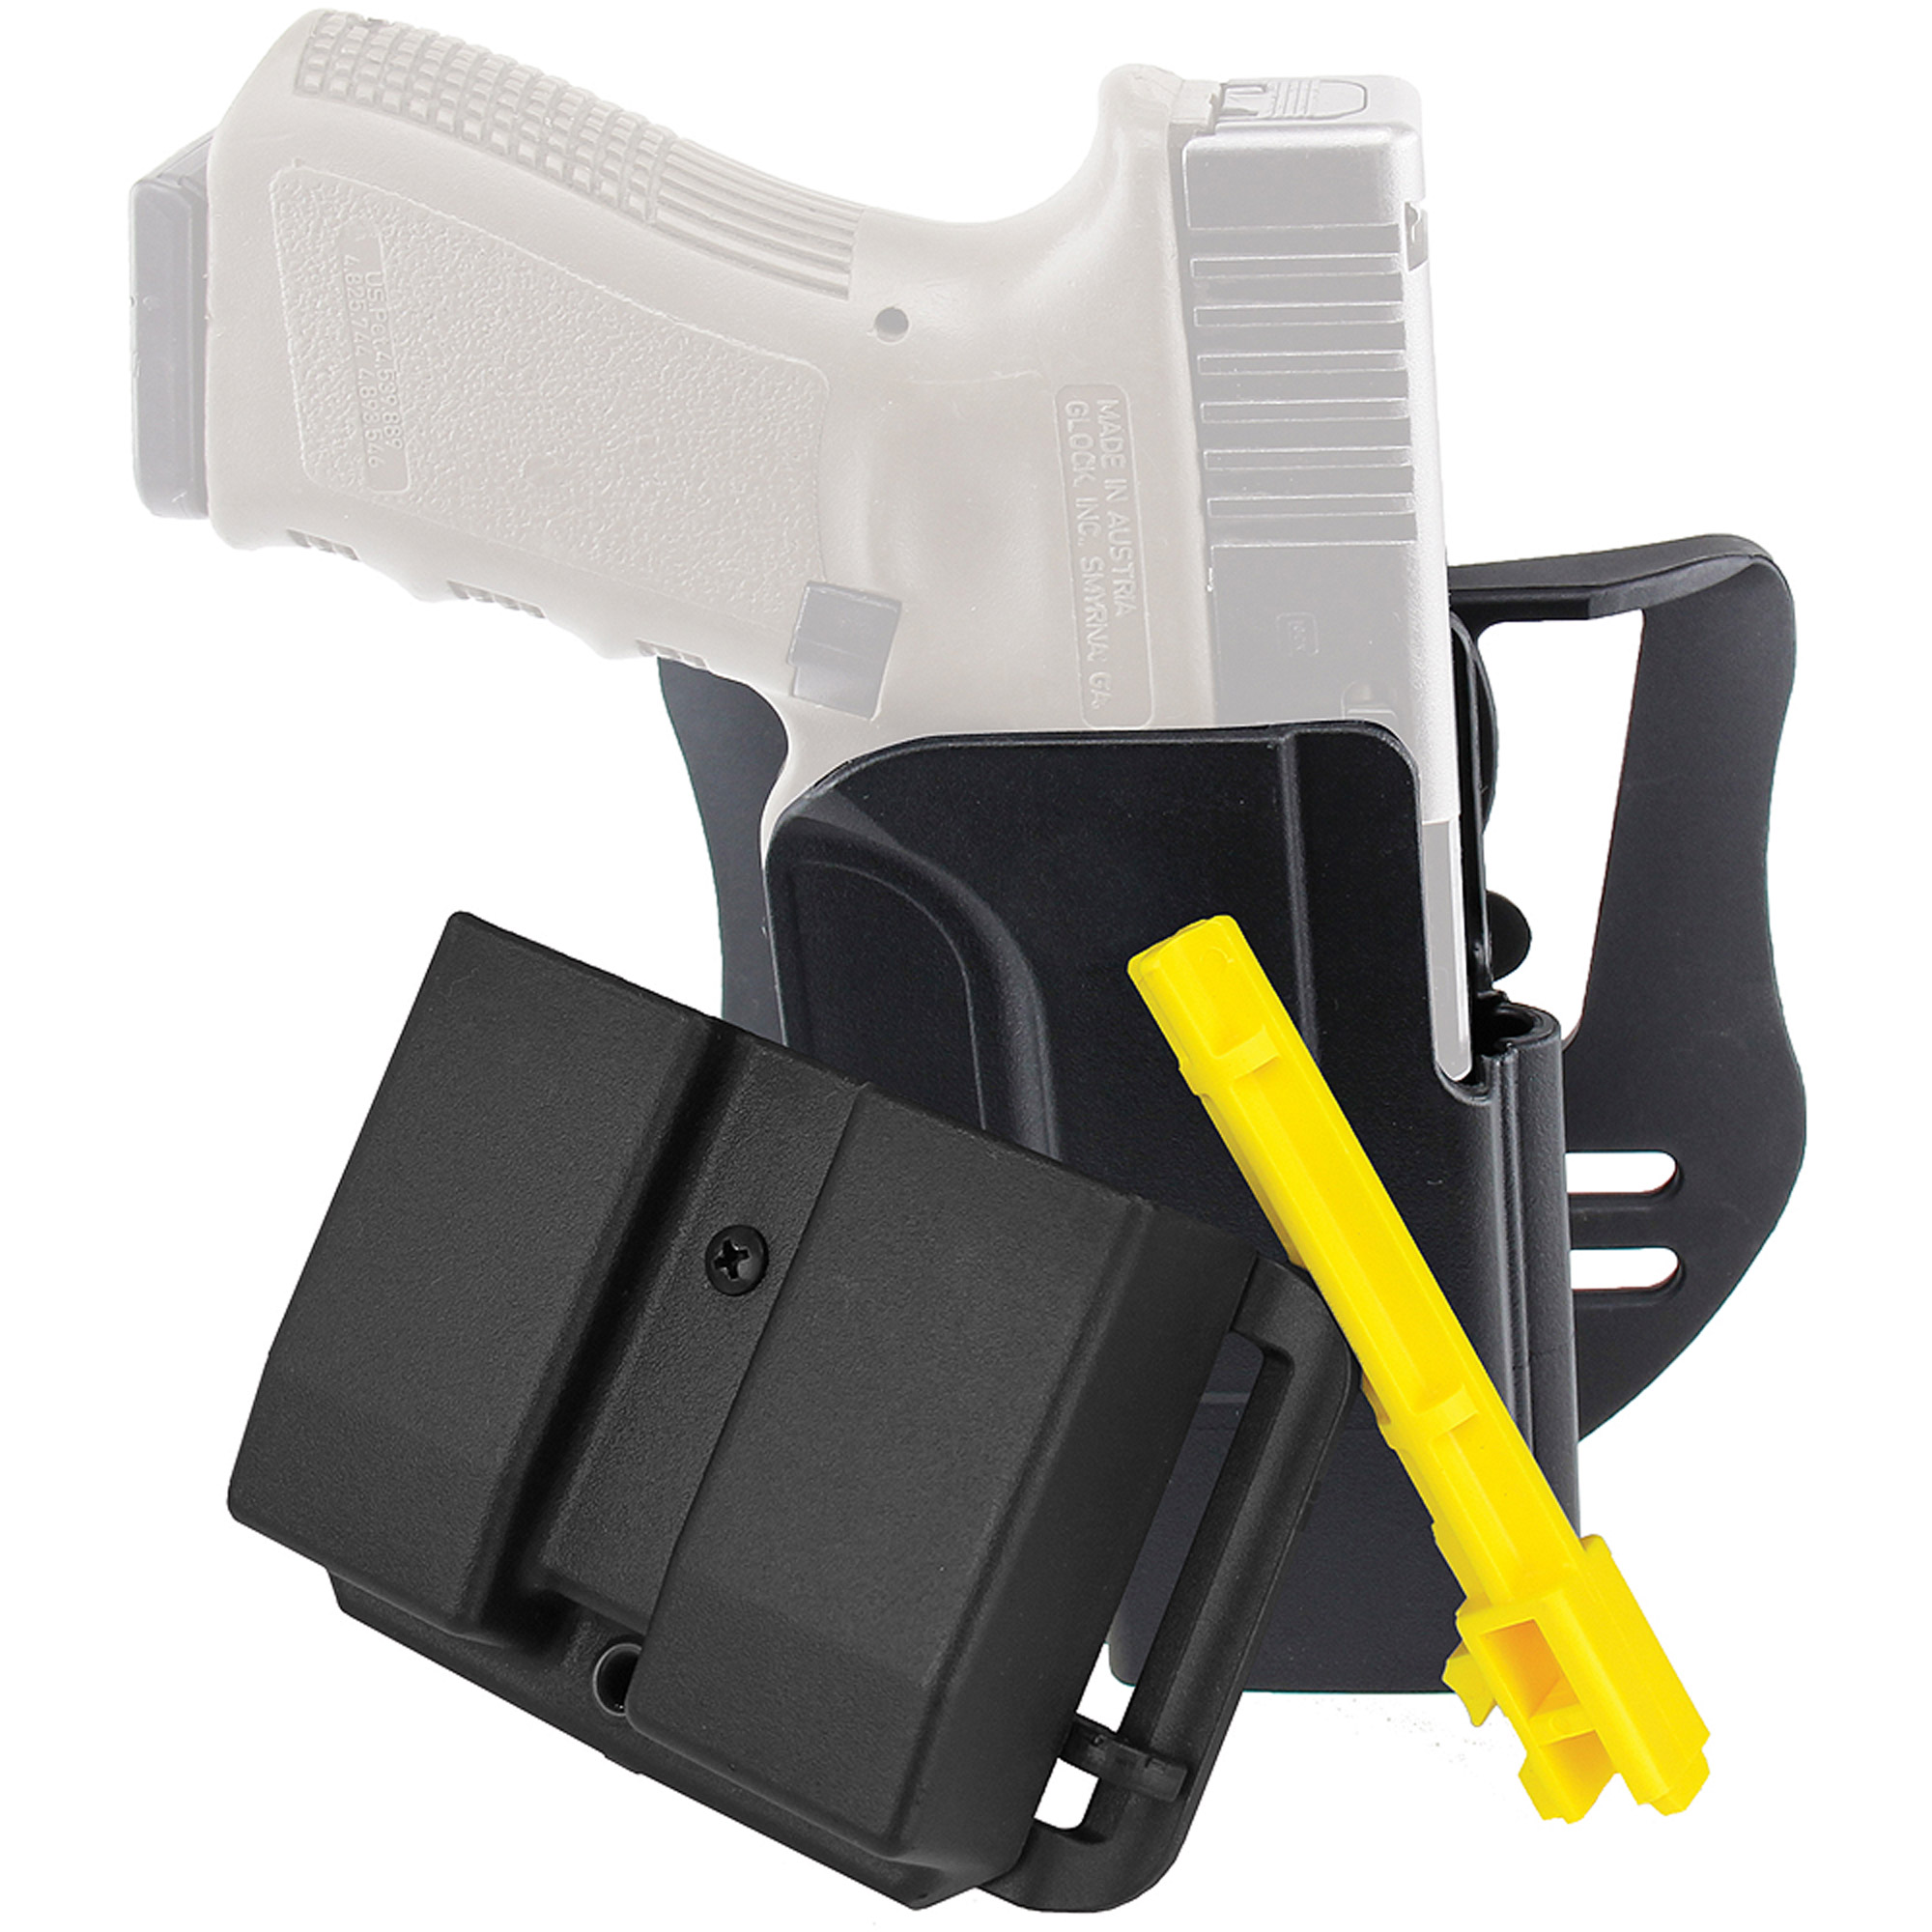 Blade Tech Industries Revolution Combopack Belt Holster, Fits Glock 19 23 32, Includes Revolution Holster Double... by Blade Tech Industries